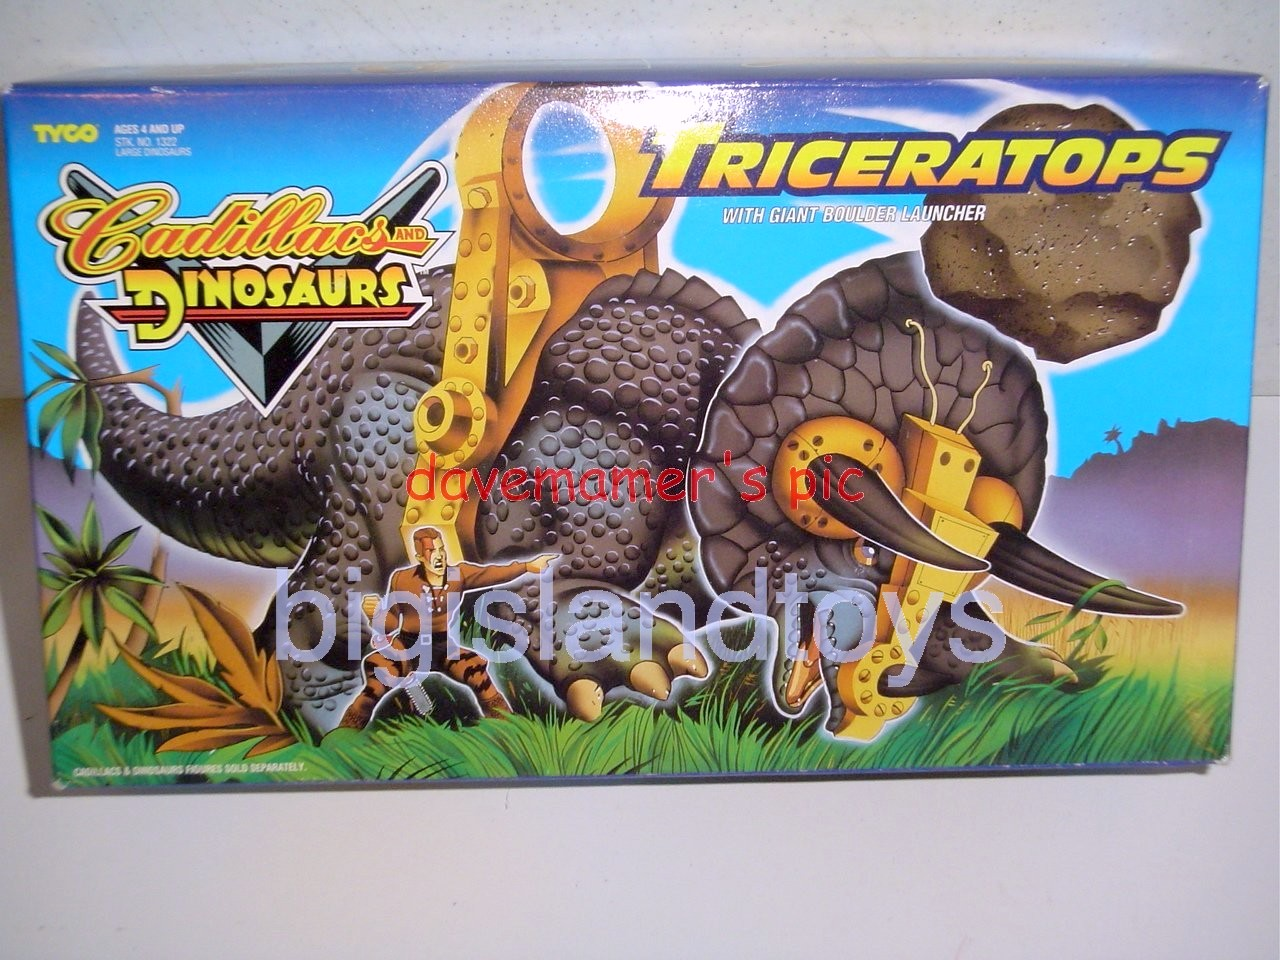 Cadillacs and Dinosaurs    TRICERATOPS with Giant Boulder Launcher